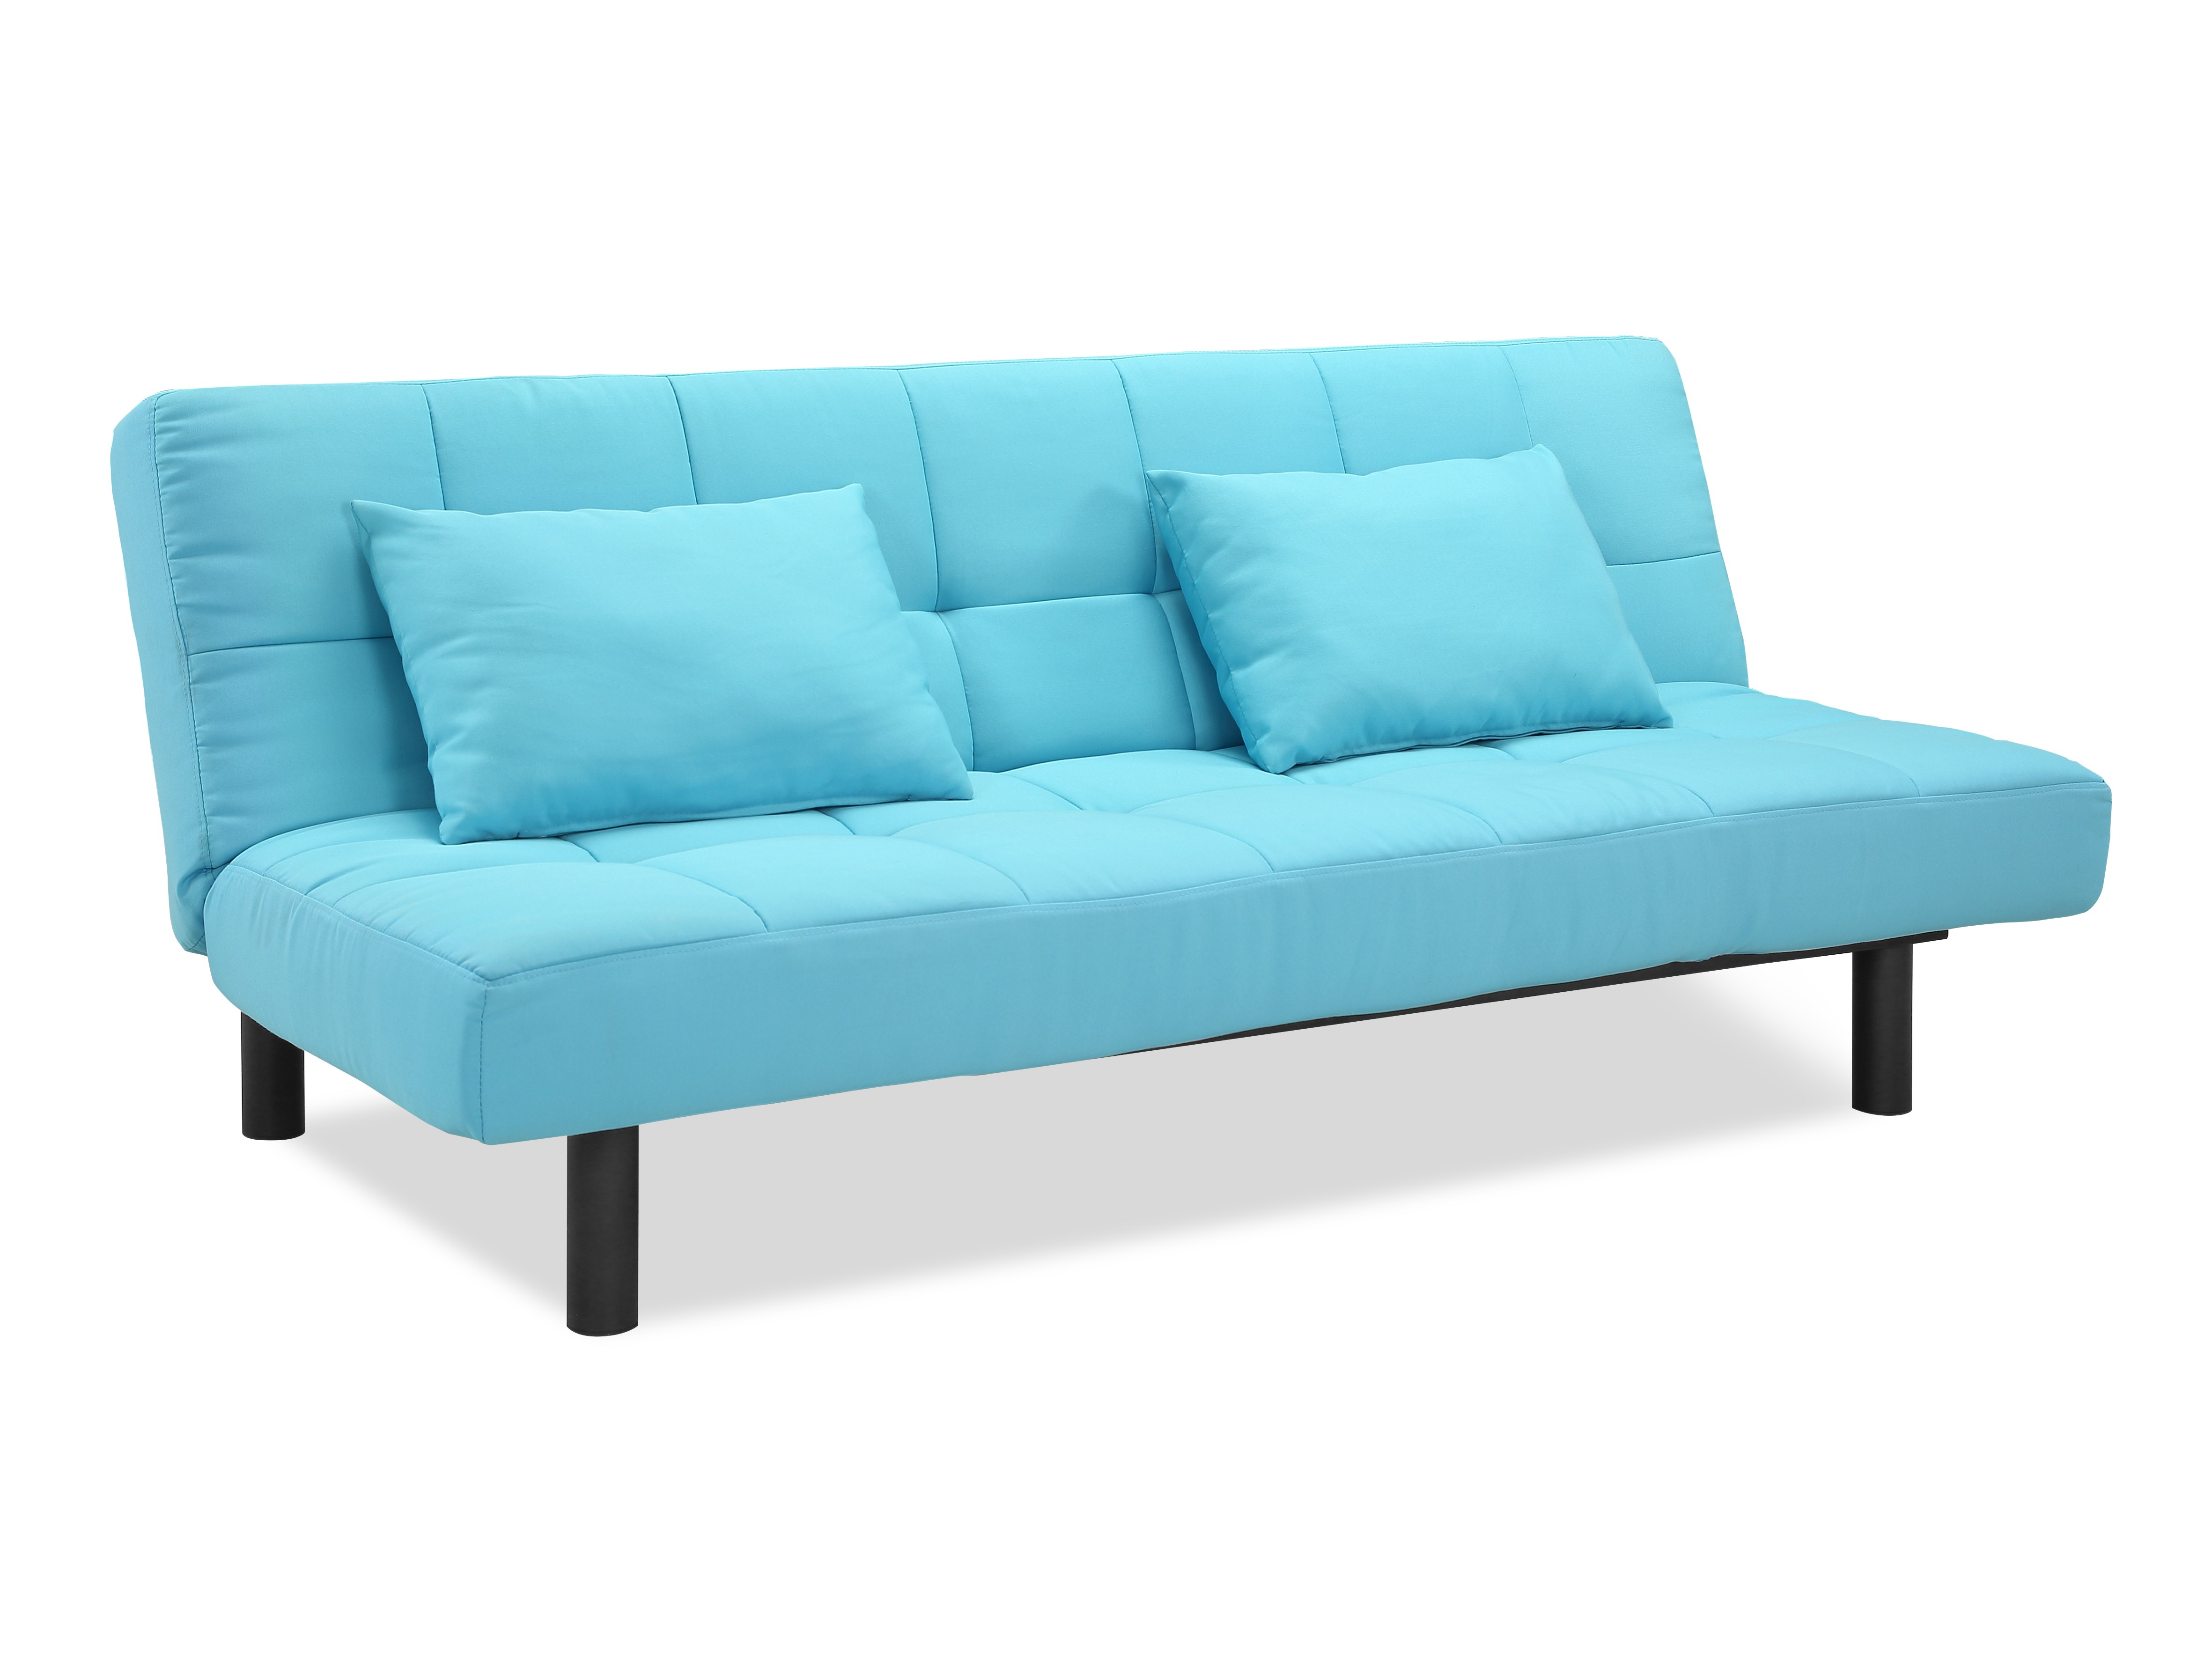 Light Blue Outdoor Sofabed Sofa Beds Star Modern Furniture